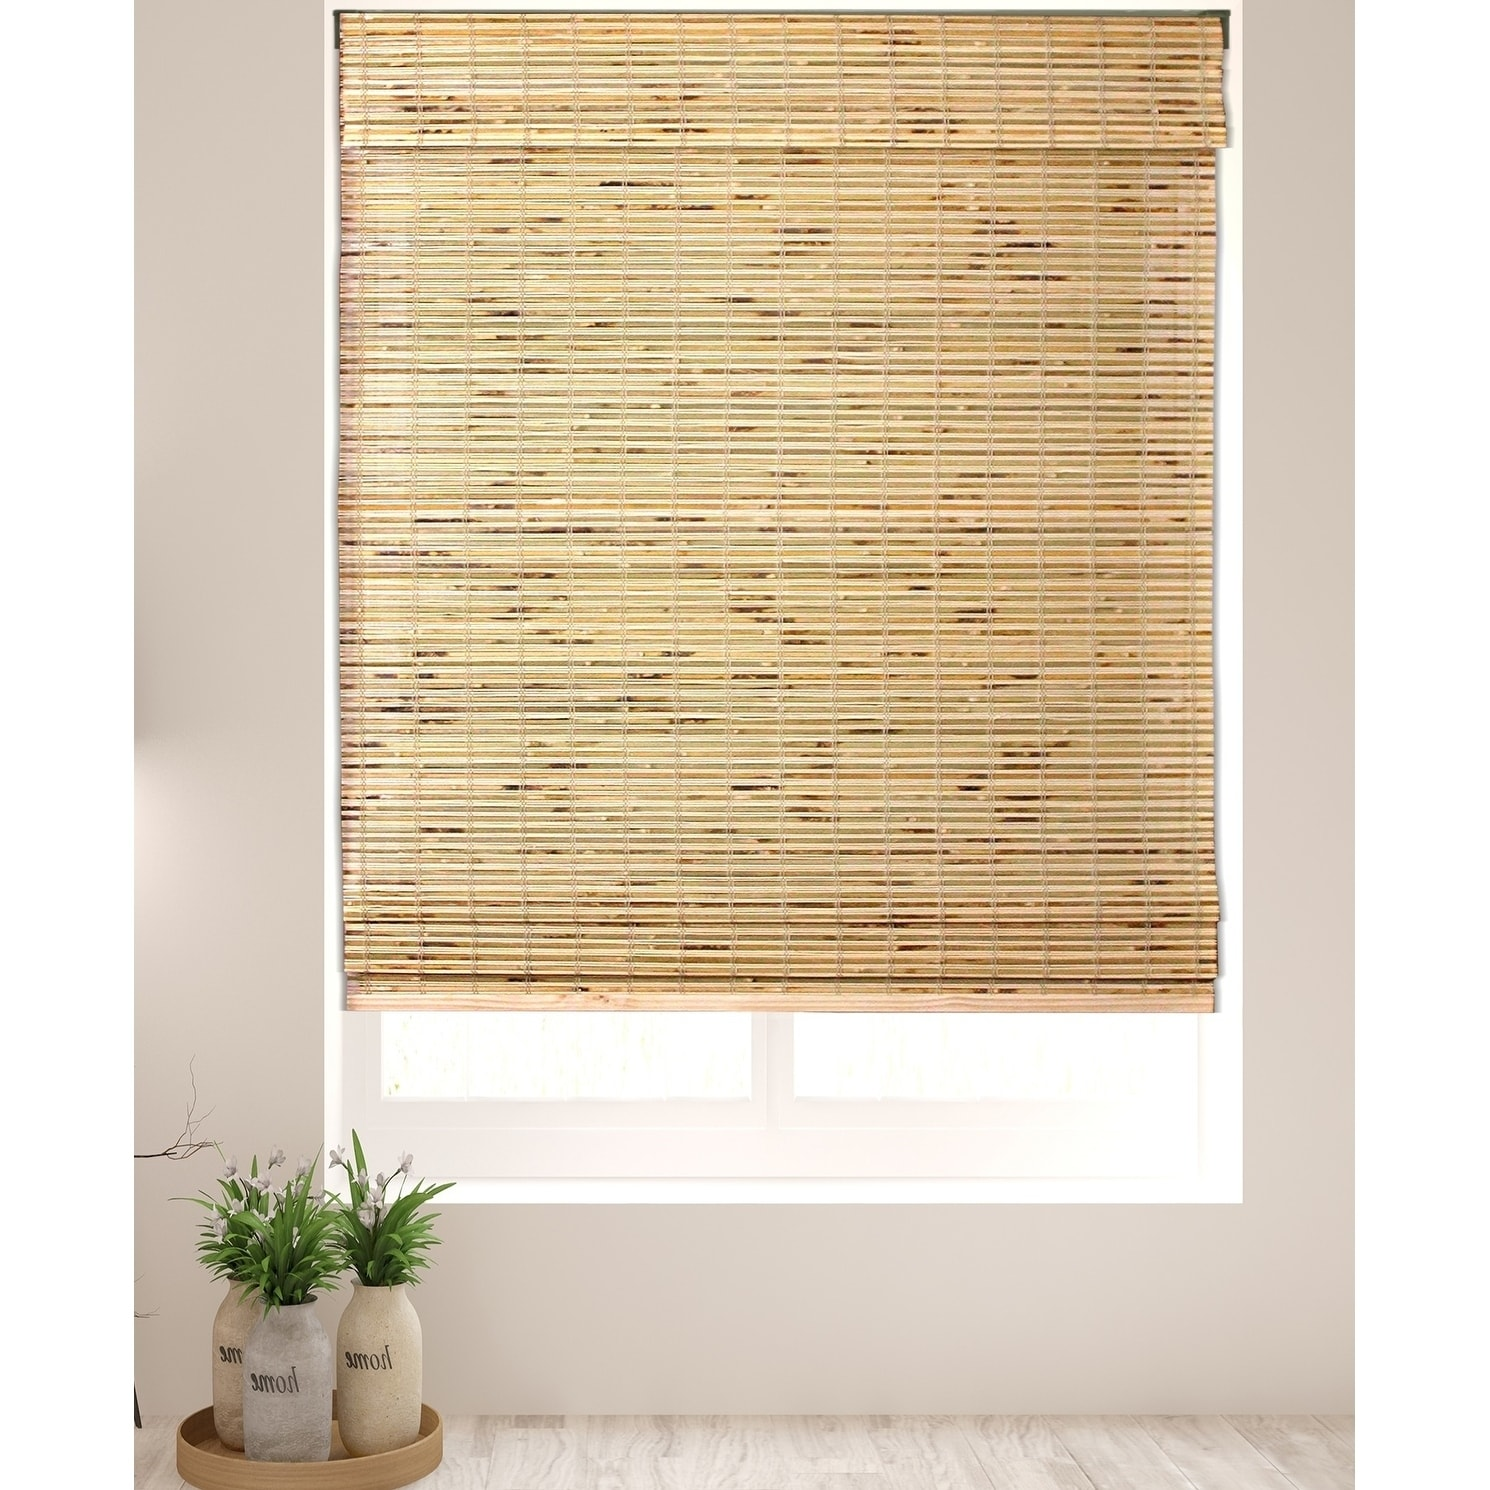 Basement Blinds Buy Roman Shades Online At Overstock Our Best Window Treatments